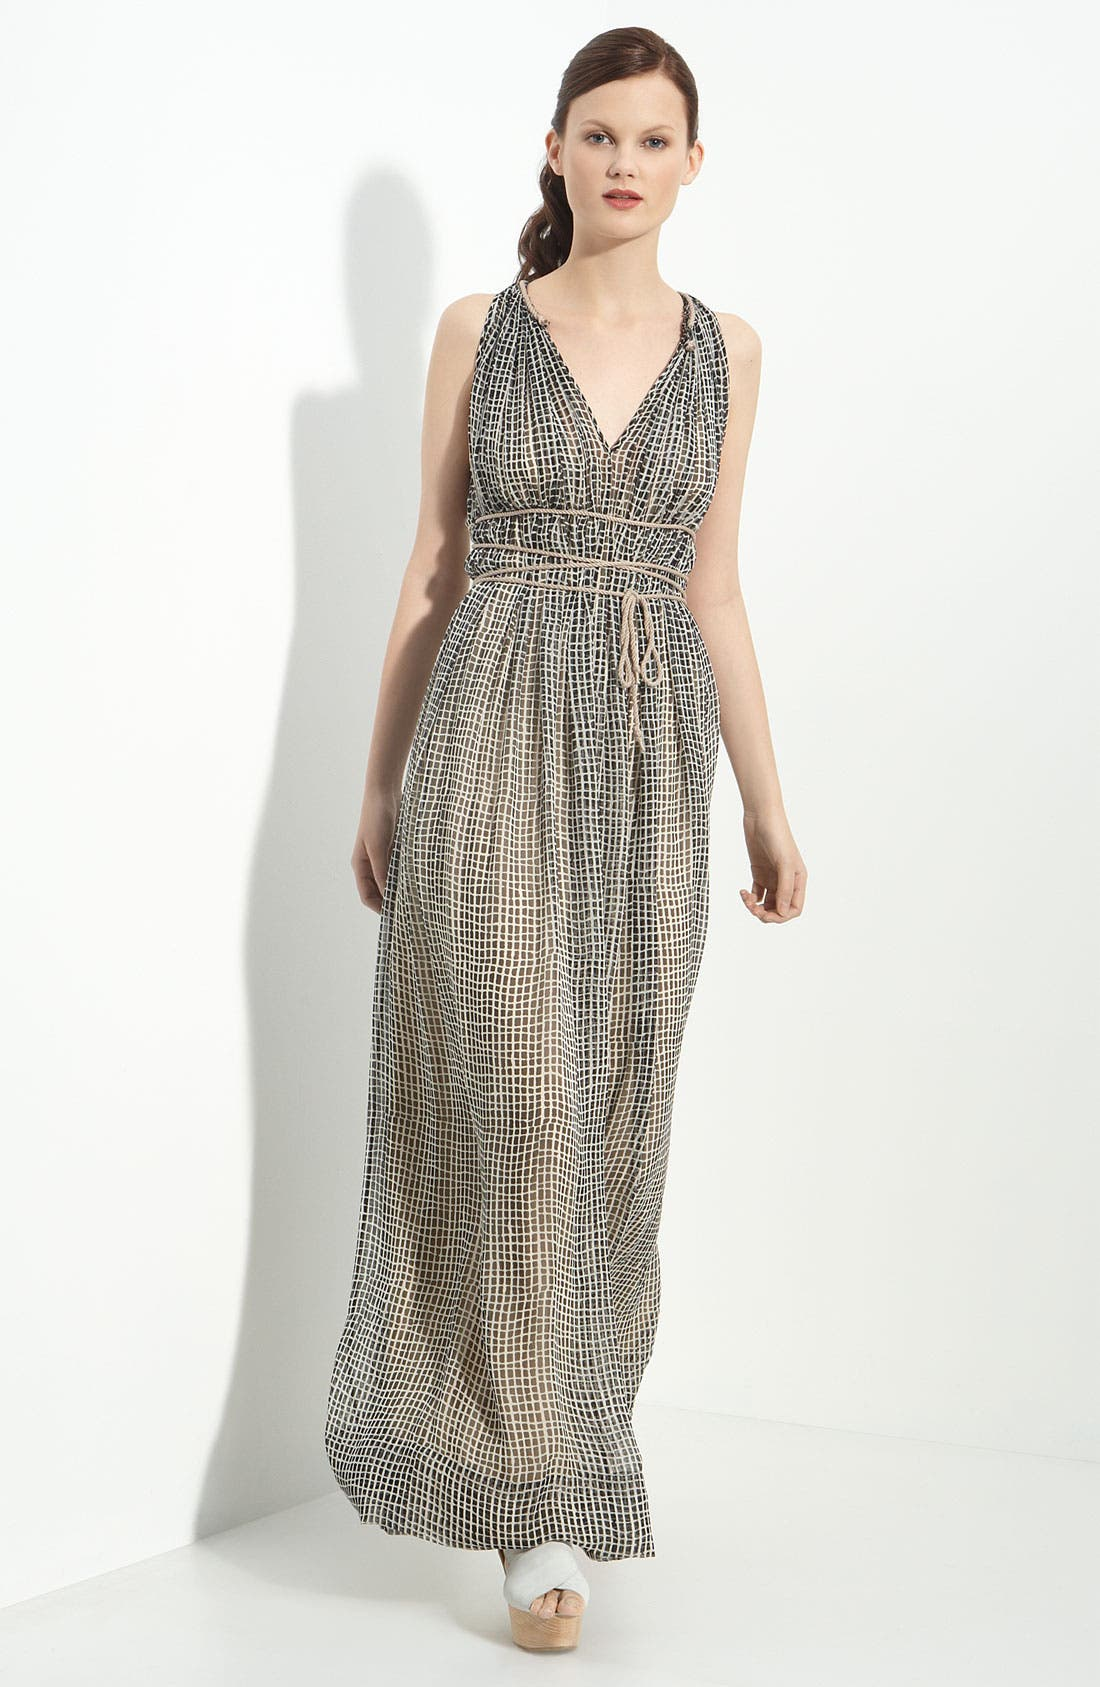 Main Image - 3.1 Phillip Lim Painted Check Print Silk Maxi Dress